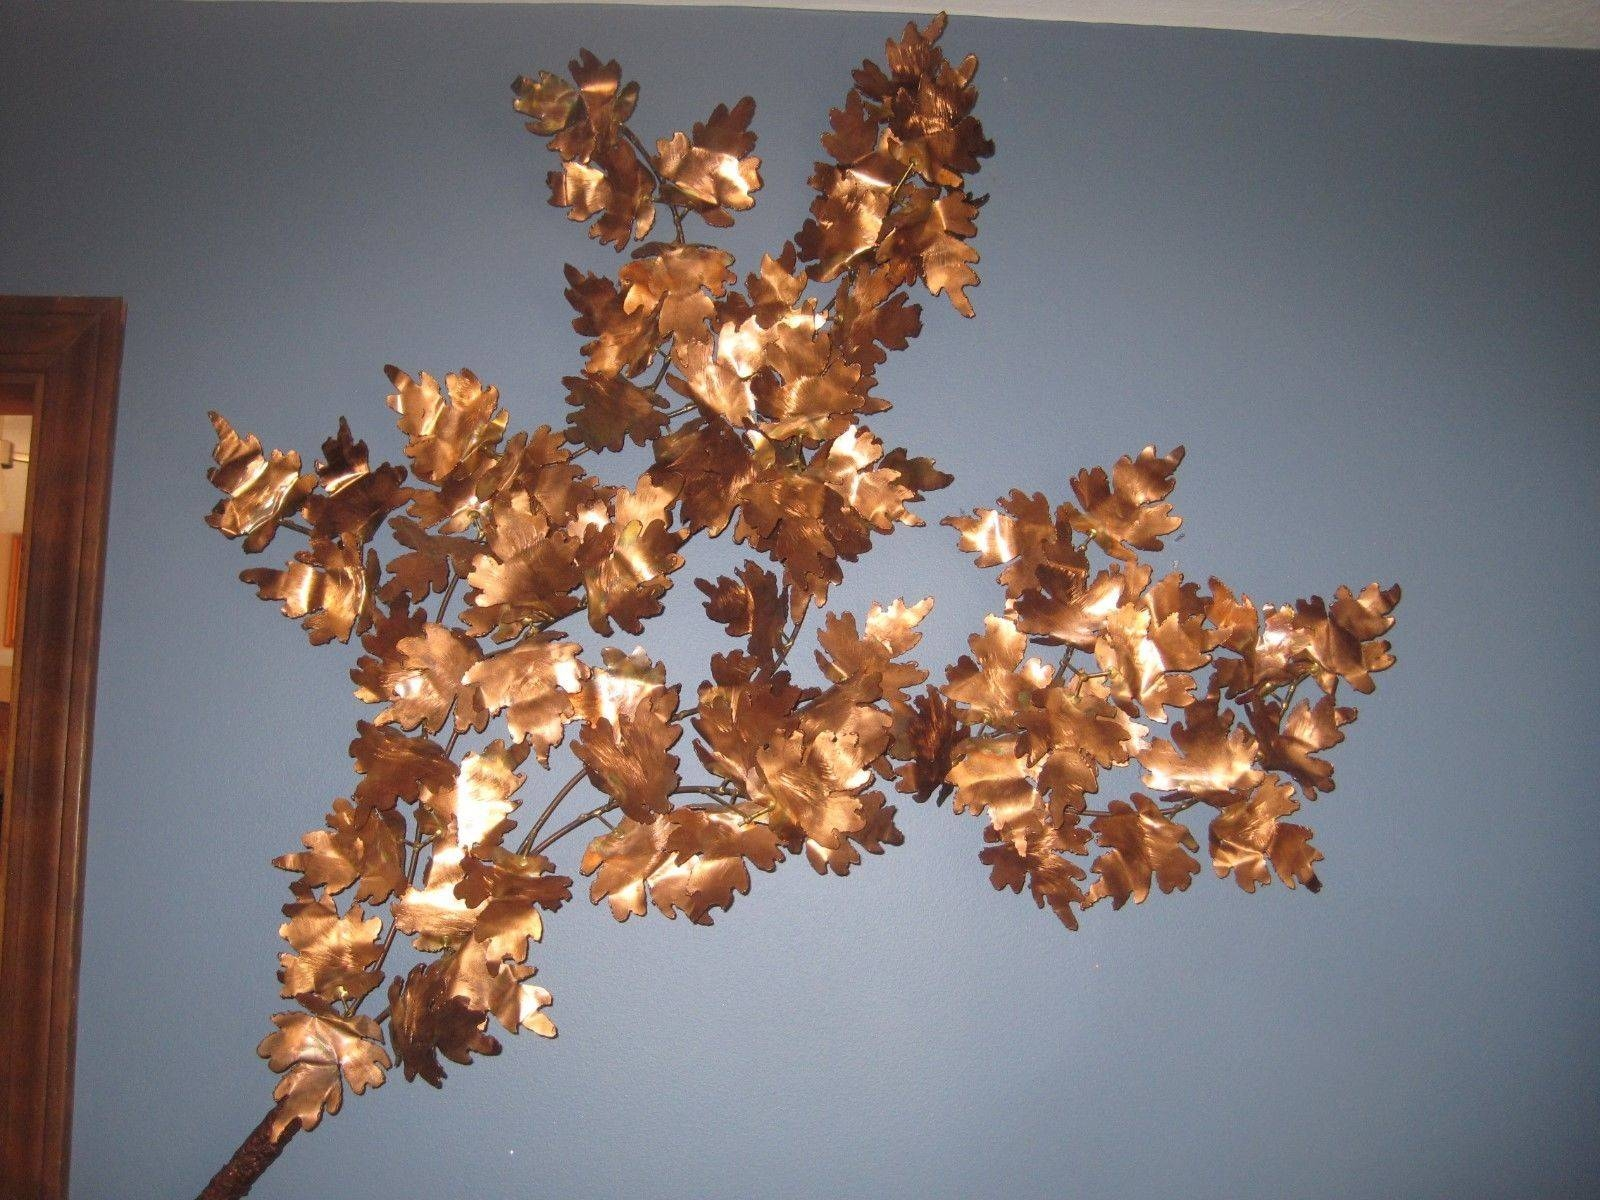 45 Solid Copper Metal Branch Maple Leaves 3D Wall Art Sculpture Inside 2017 3D Metal Wall Art Sculptures (View 3 of 20)